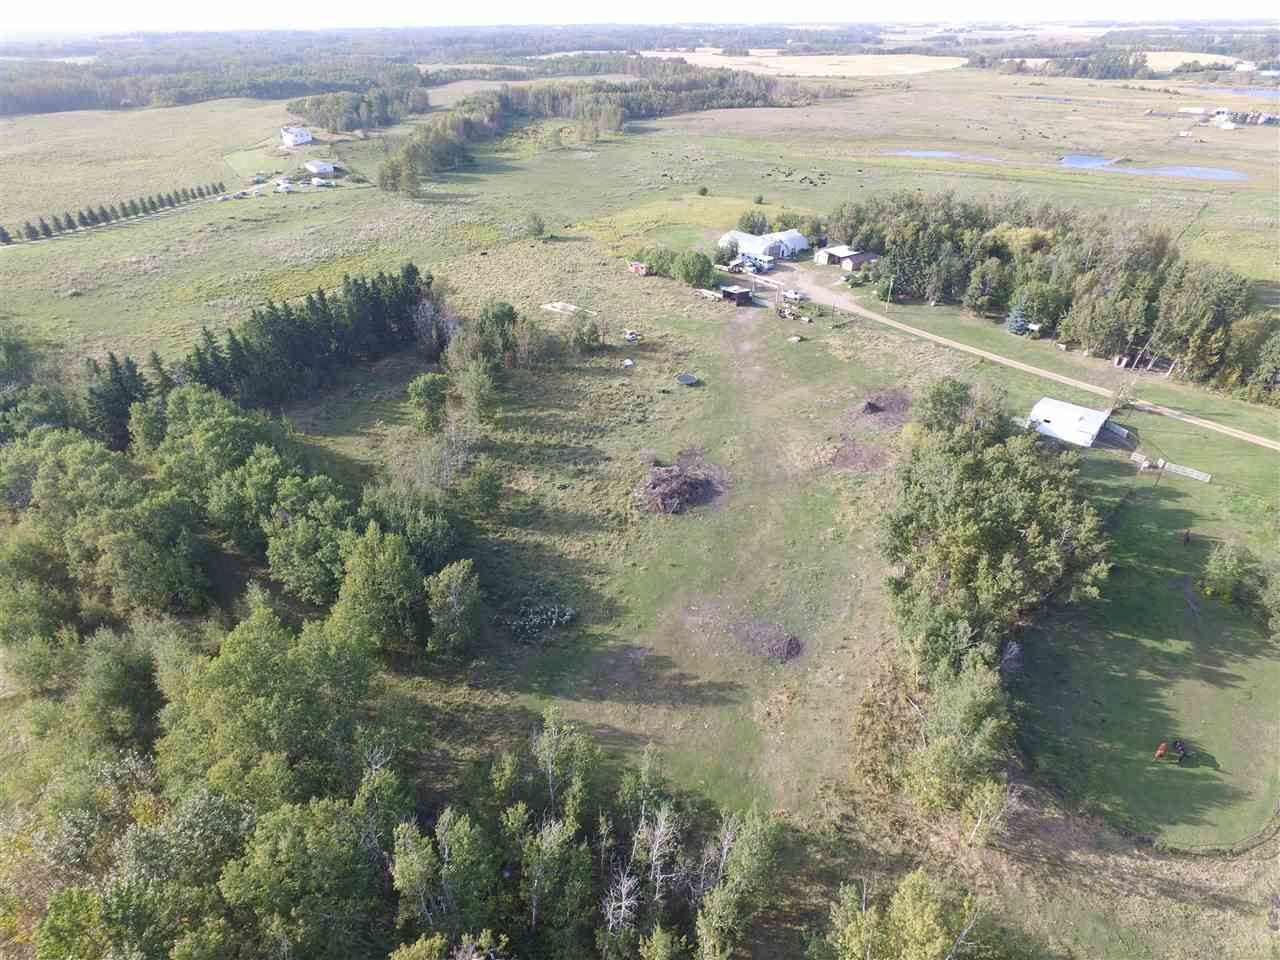 Photo 19: Photos: 472050A Hwy 814: Rural Wetaskiwin County House for sale : MLS®# E4213442